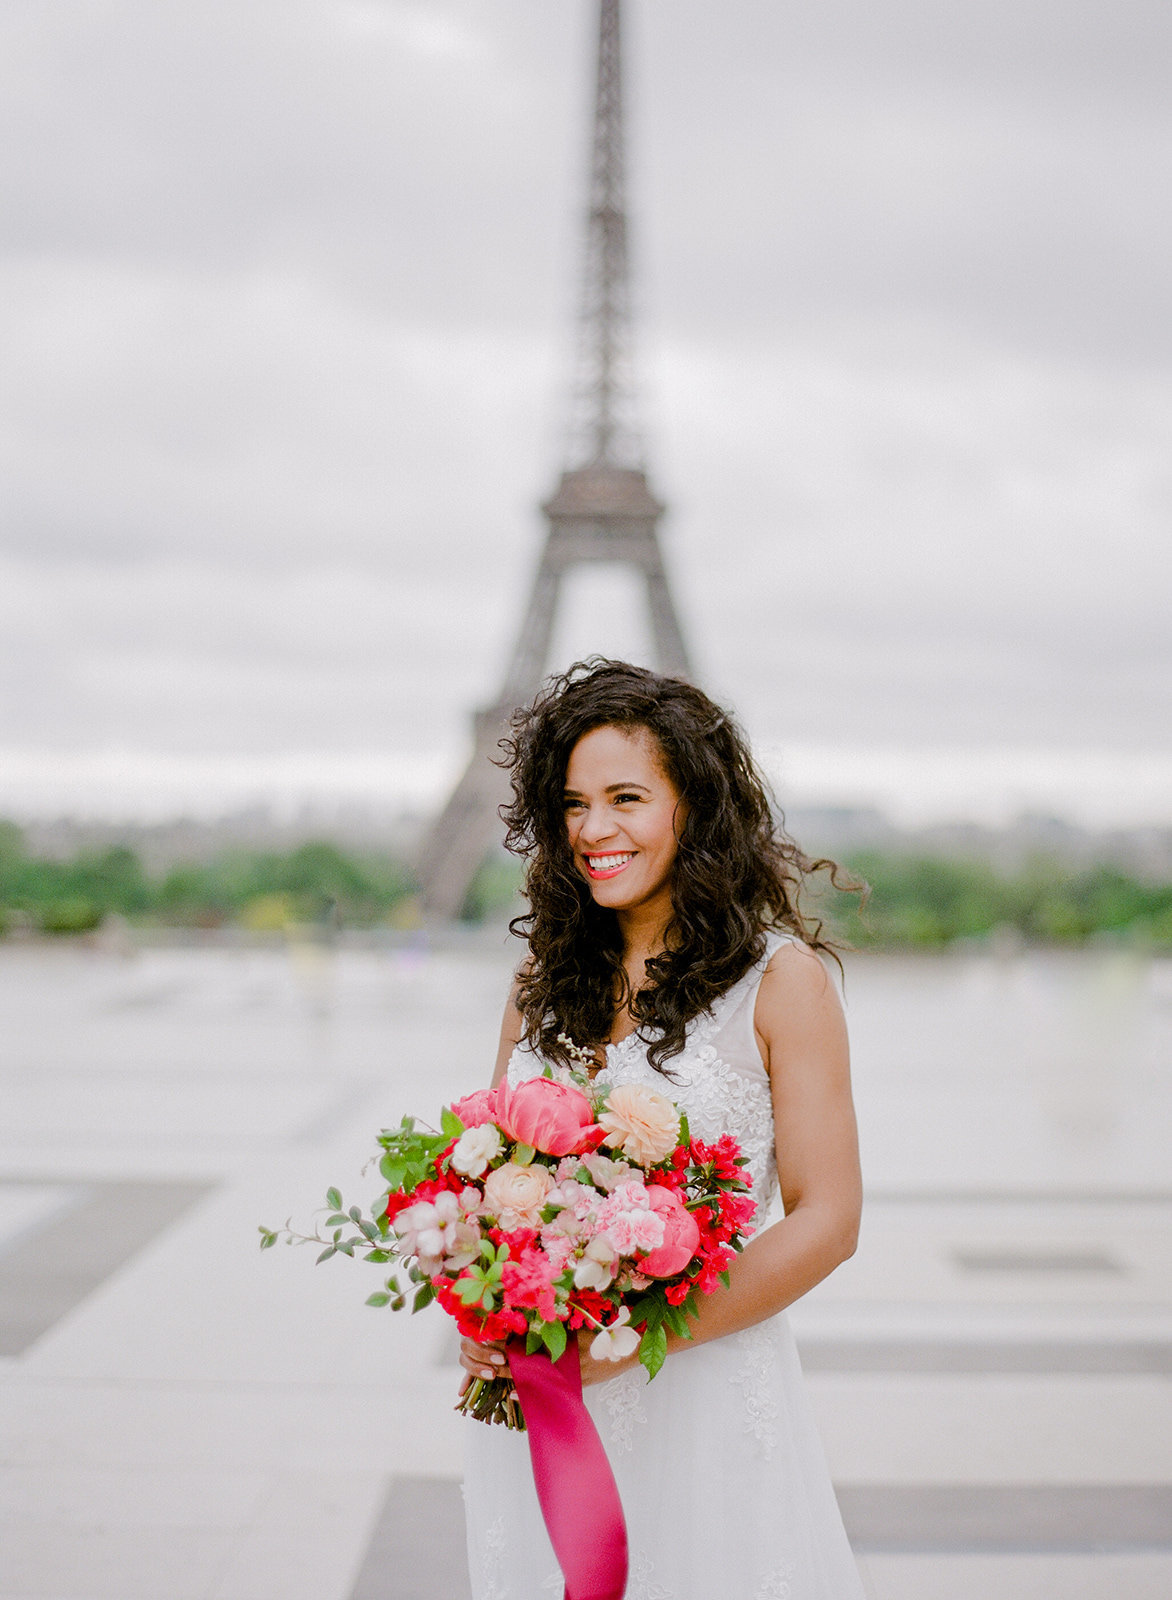 Laure_Lalliard_Design_Trocadero_Janine_Licare_Photography-2